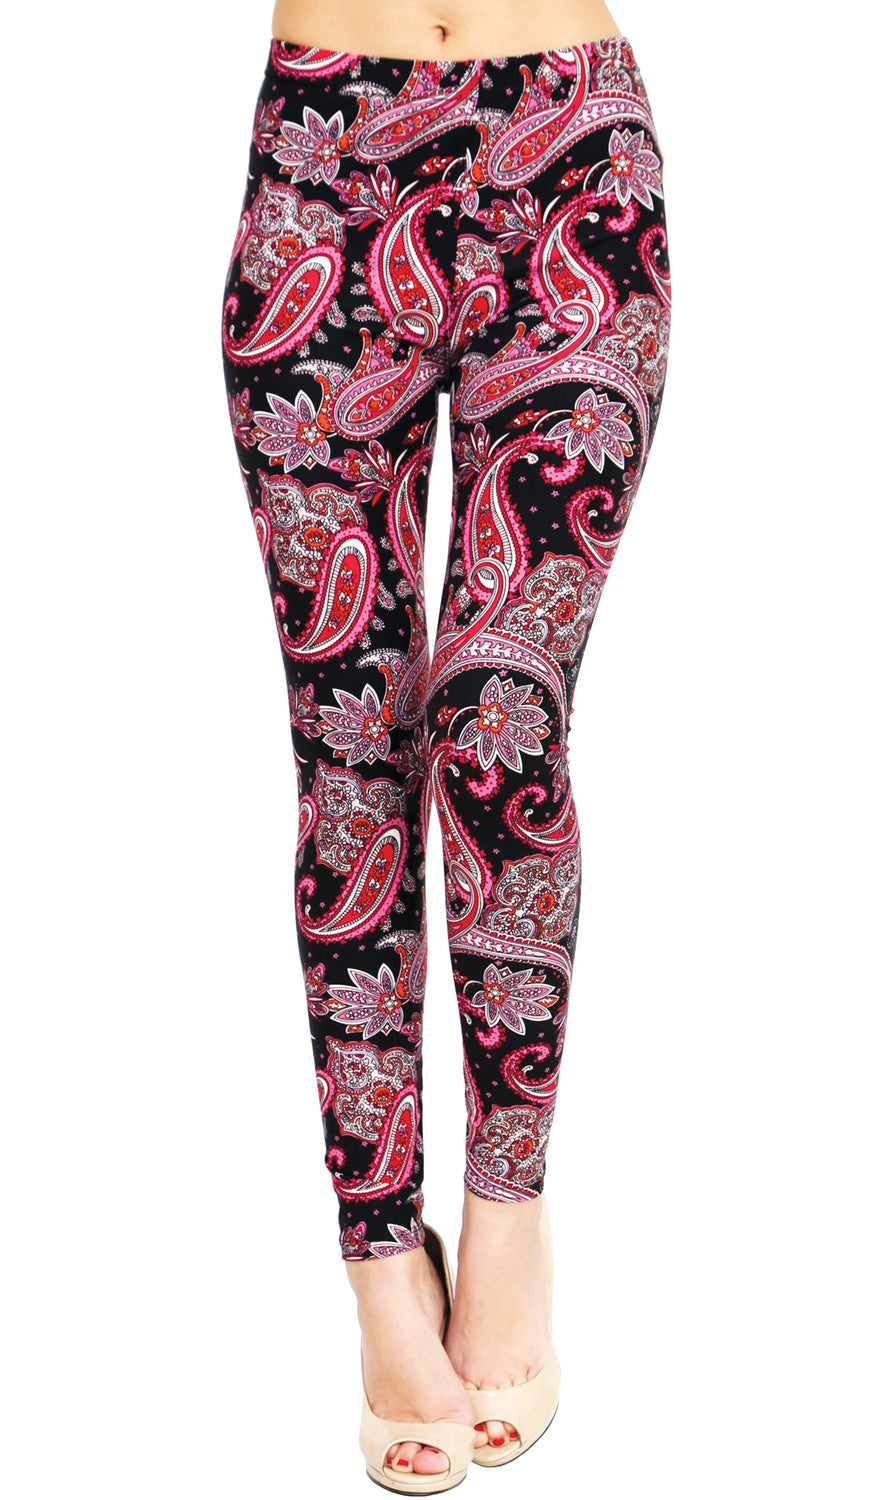 Printed Brushed Leggings - Pink Starry Night Paisley - VIV Collection